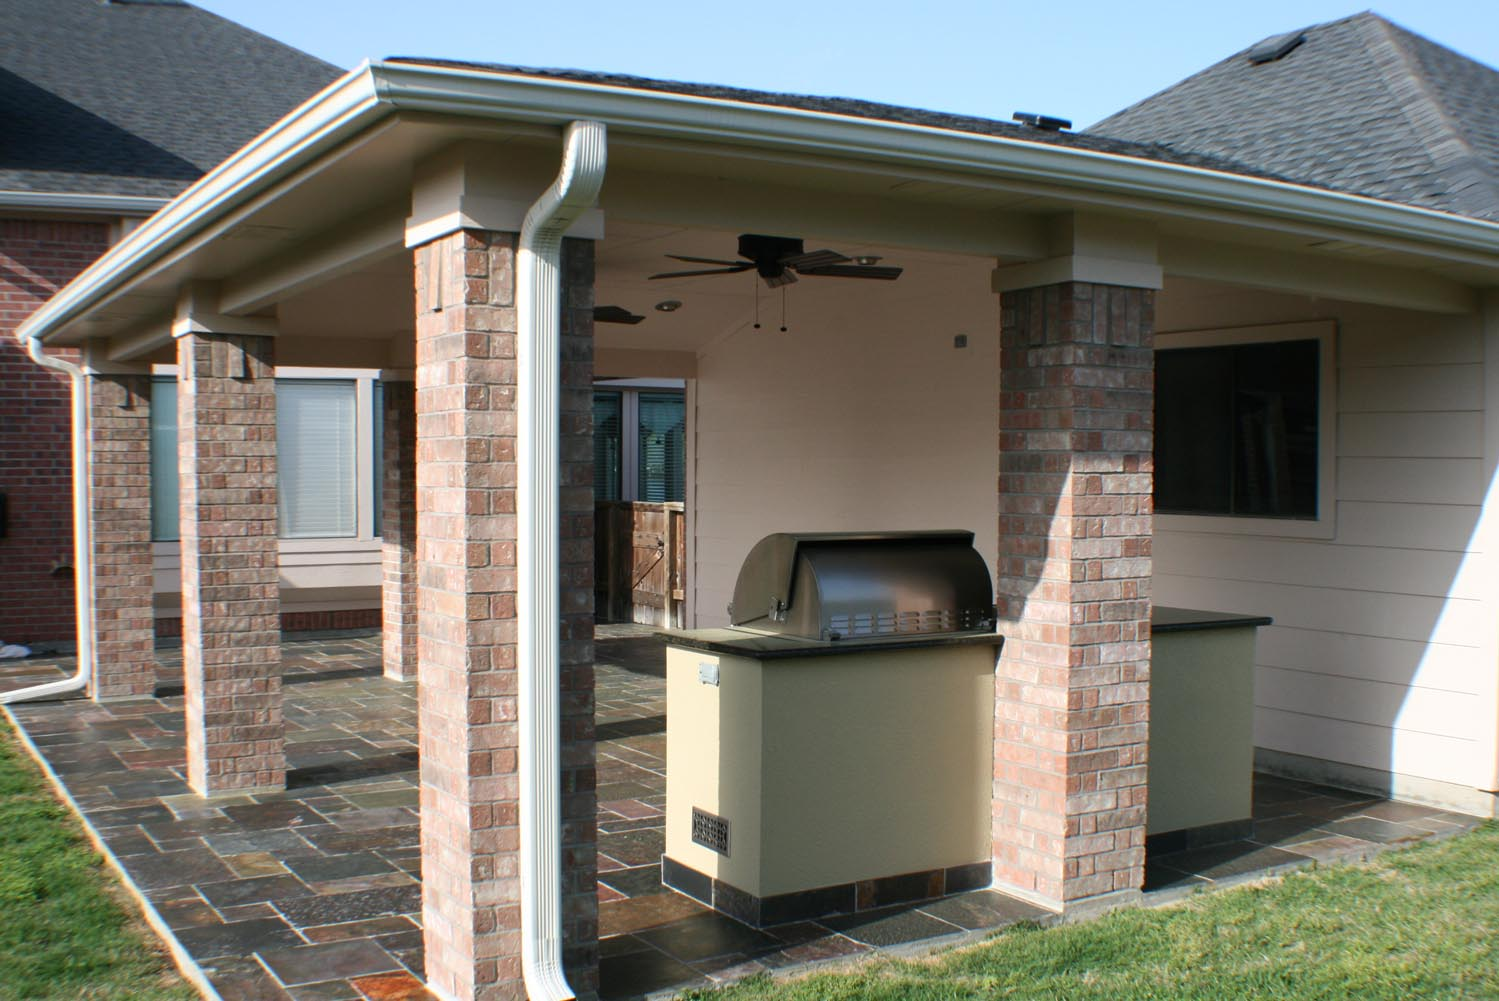 Natural Stone Floor Patio Cover and Outdoor Kitchen - HHI ... on Backyard Patio Cover  id=14682